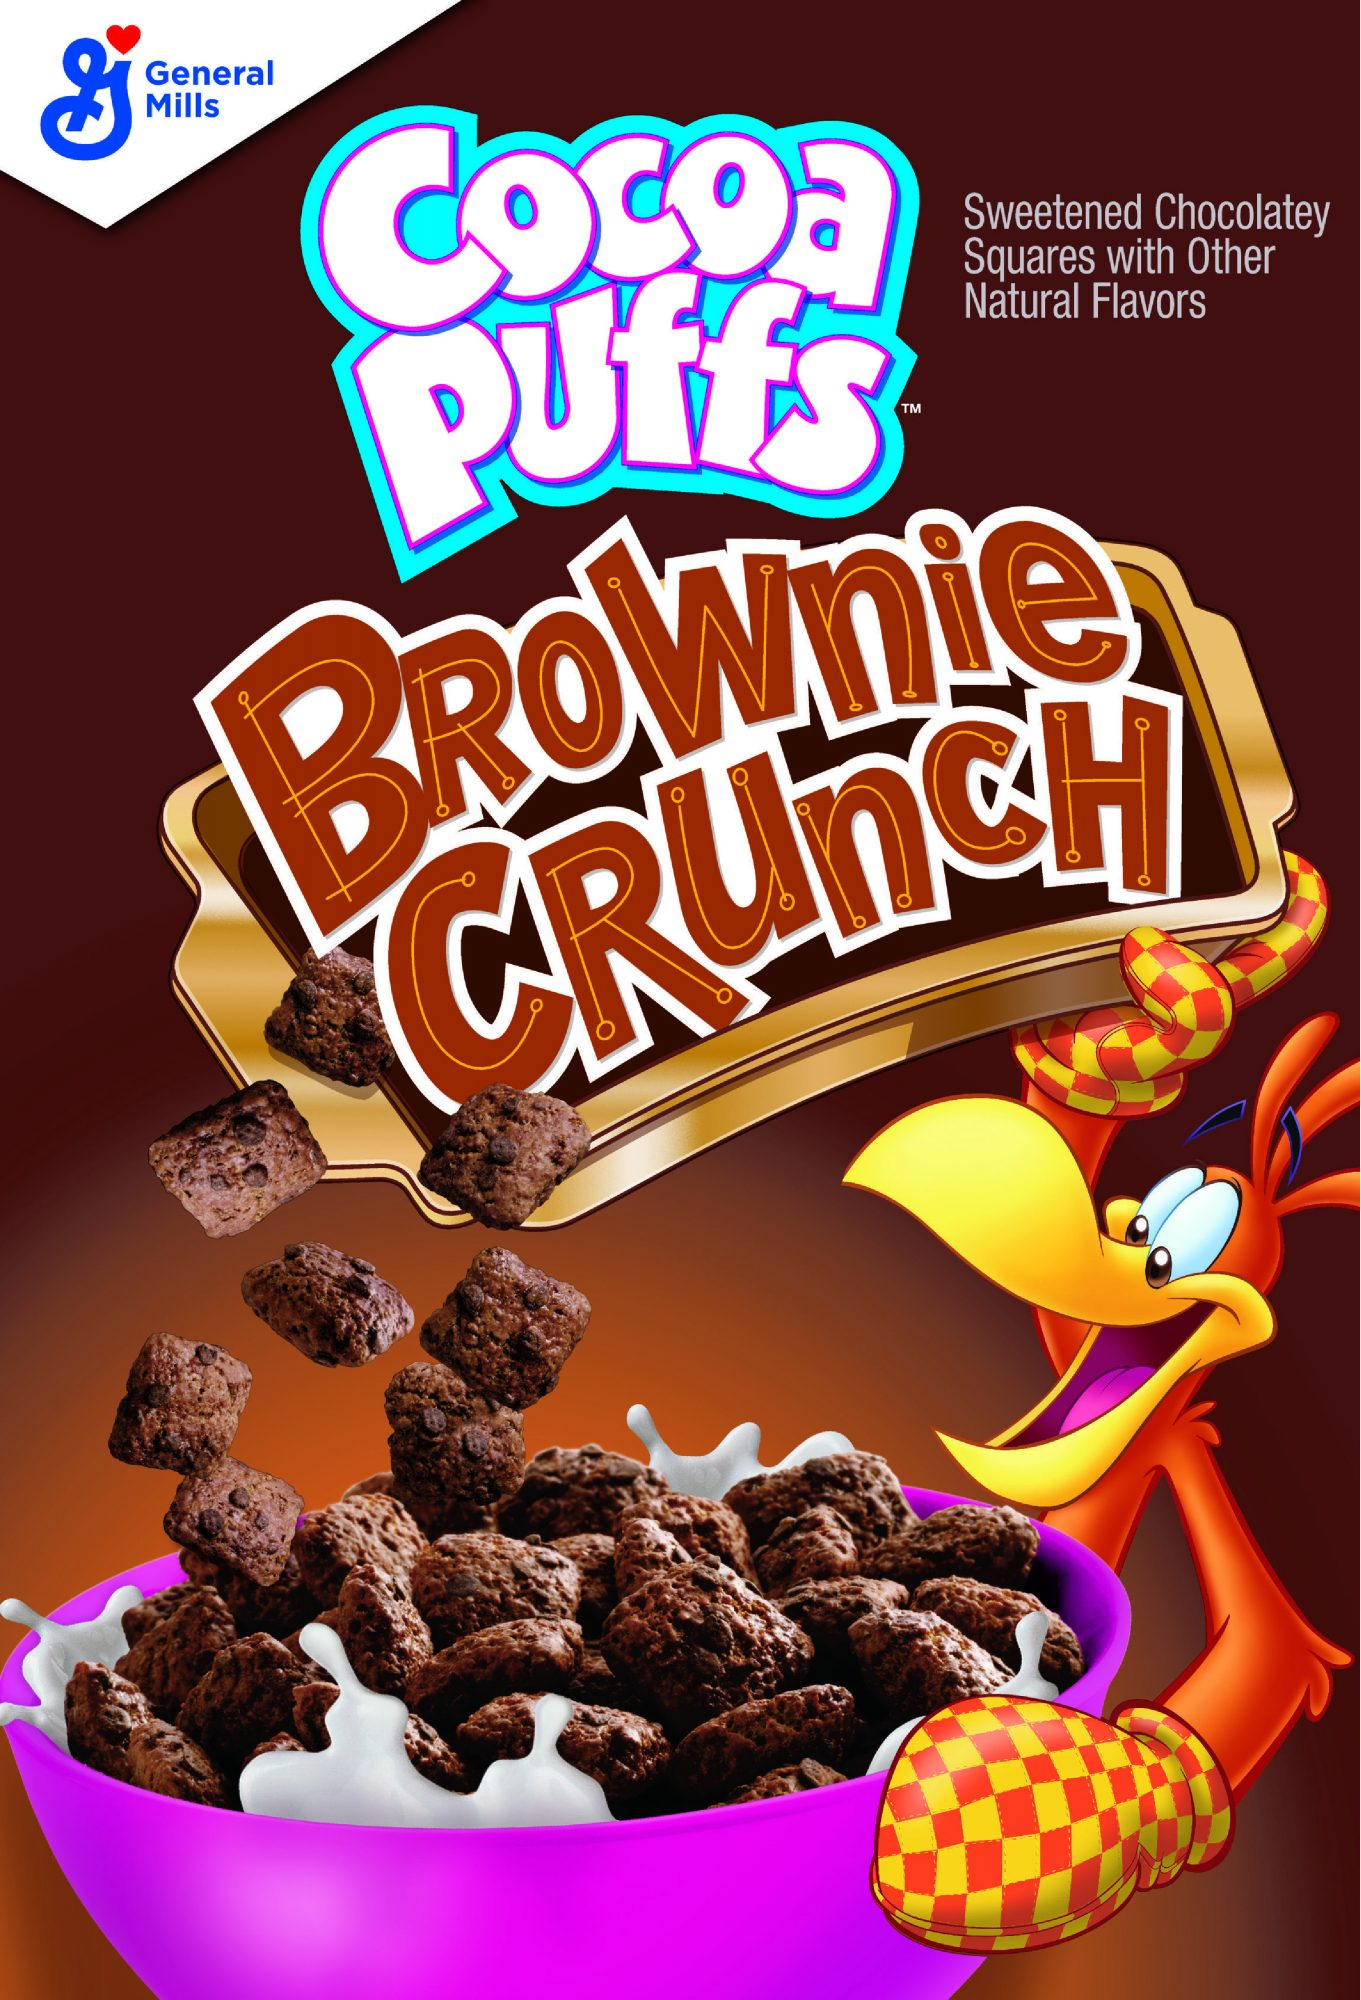 Cocoa Puffs Brownie Crunch